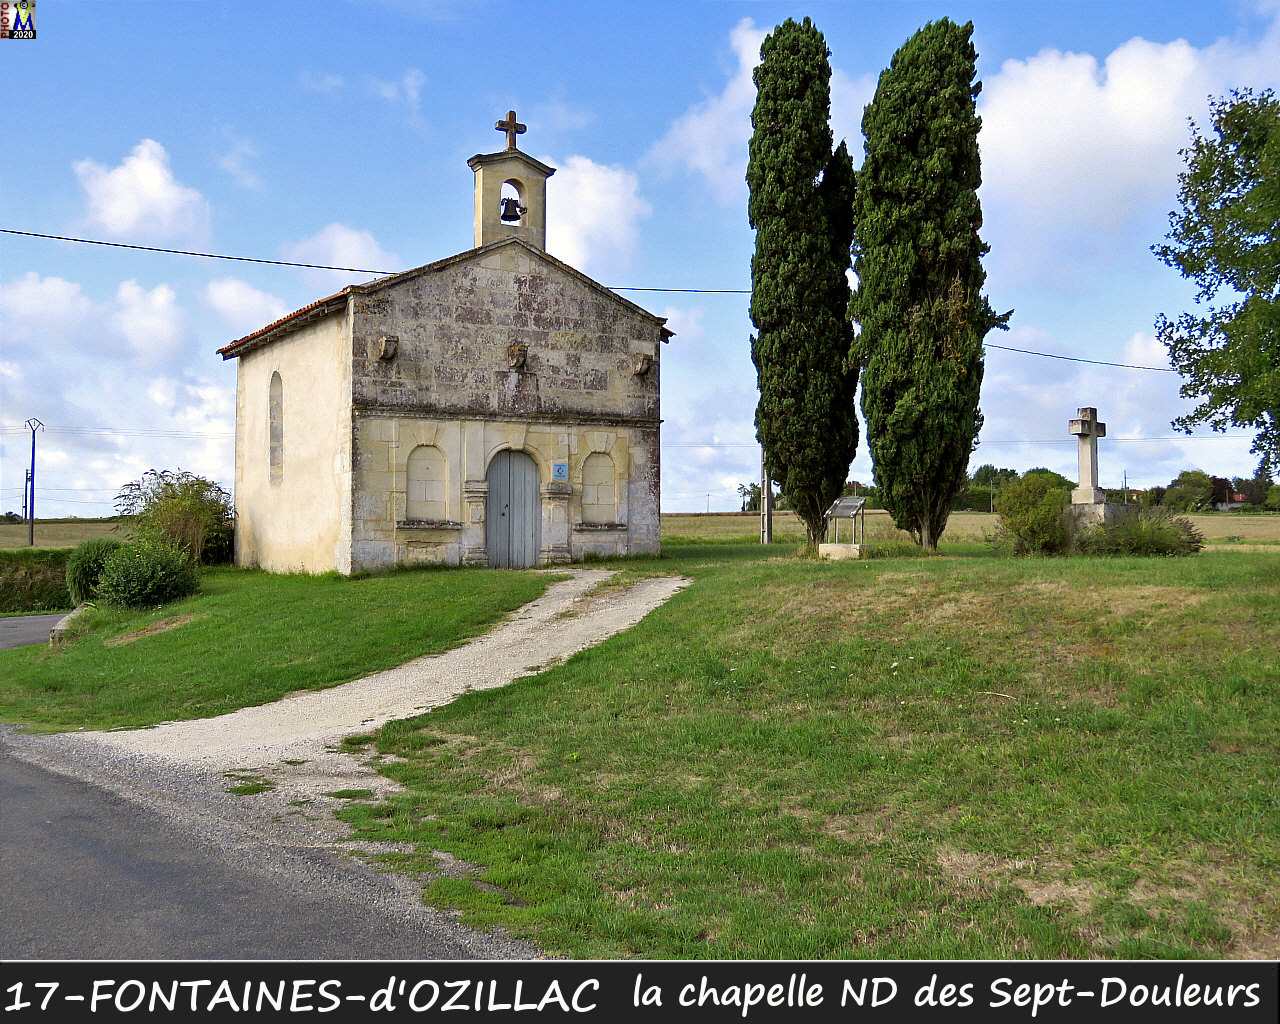 17FONTAINE-OZILLAC_chapelle_1000.jpg